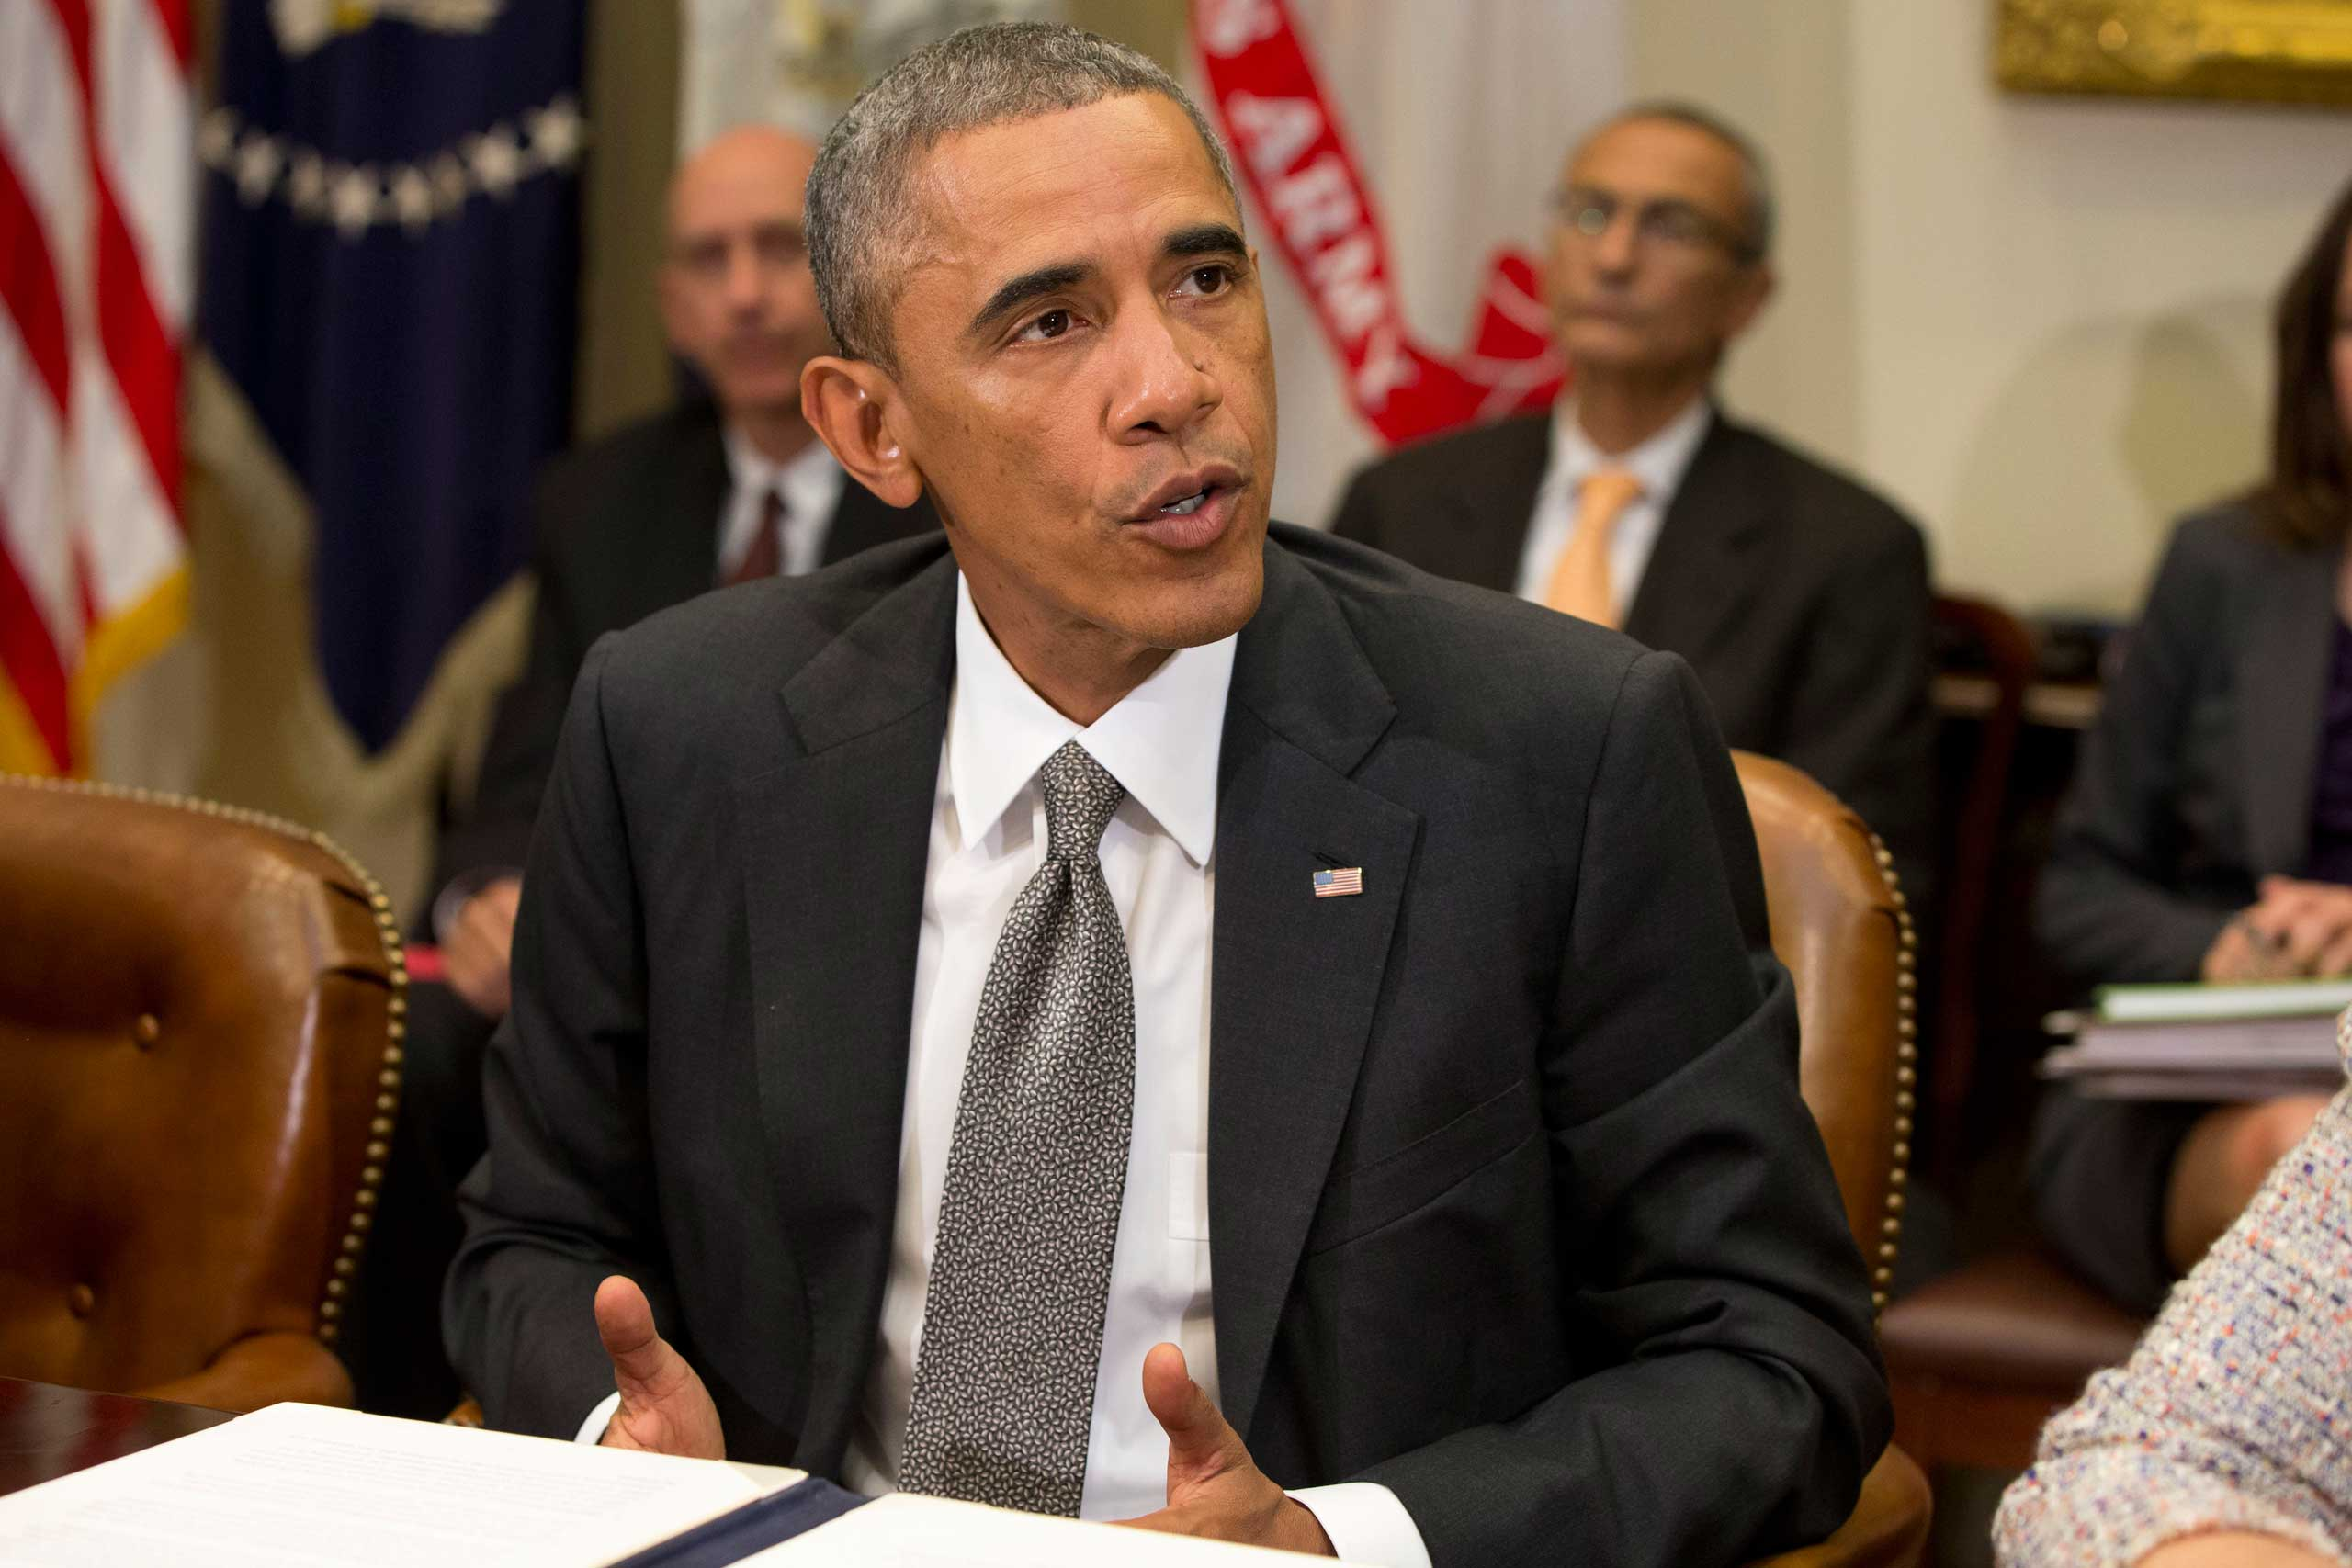 President Barack Obama meets with members of his national security team and senior staff to receive an update on the Ebola outbreak in West Africa, Oct. 6, 2014, in the Roosevelt Room of the White House in Washington.